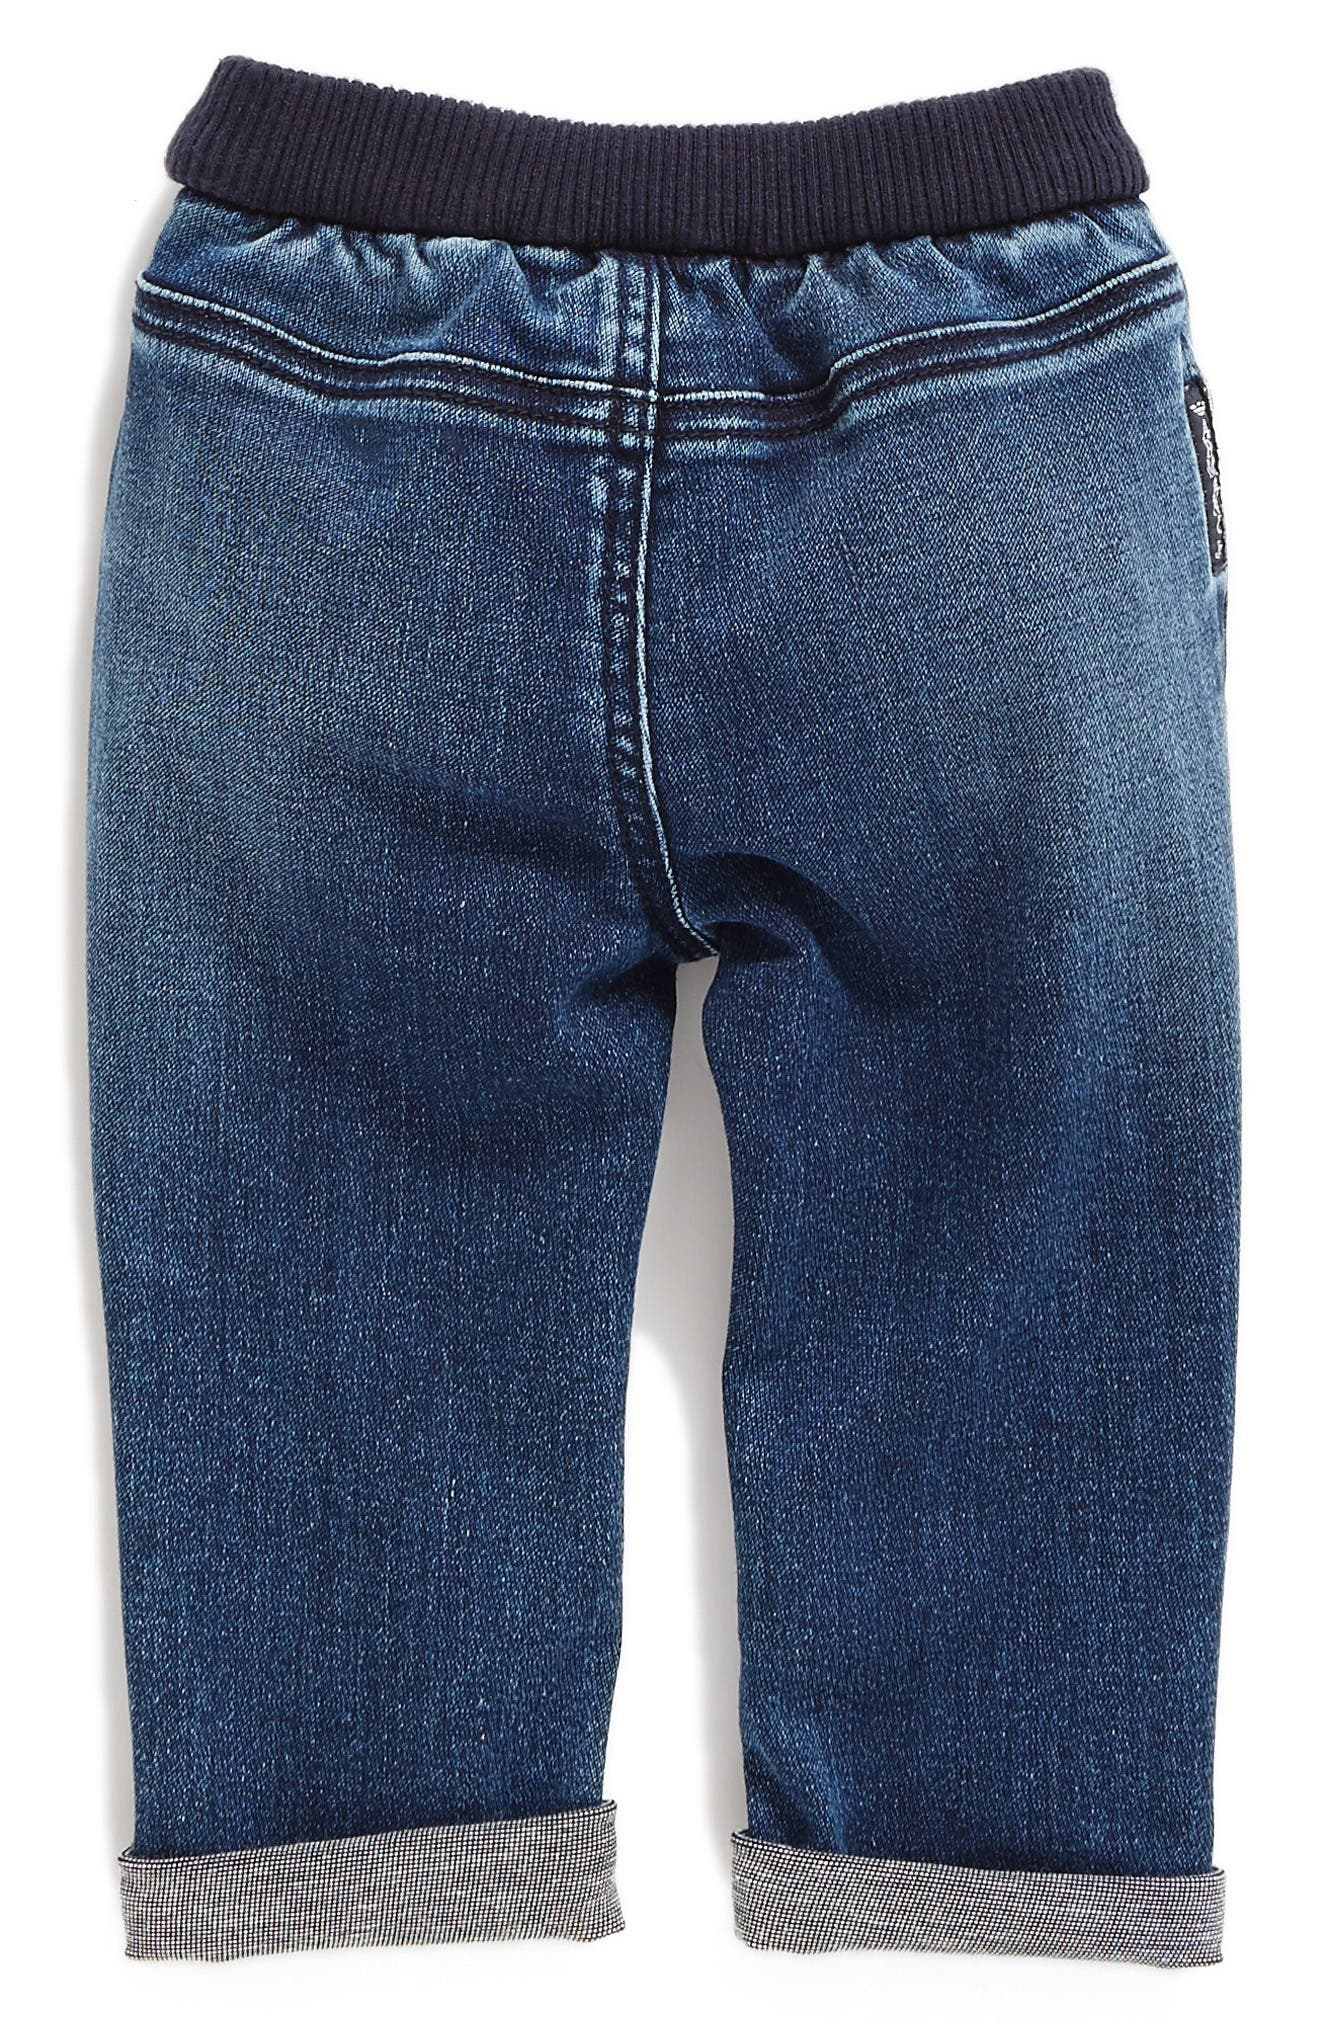 Alternate Image 2  - Armani Junior Elastic Waist Cuffed Jeans (Baby Boys)